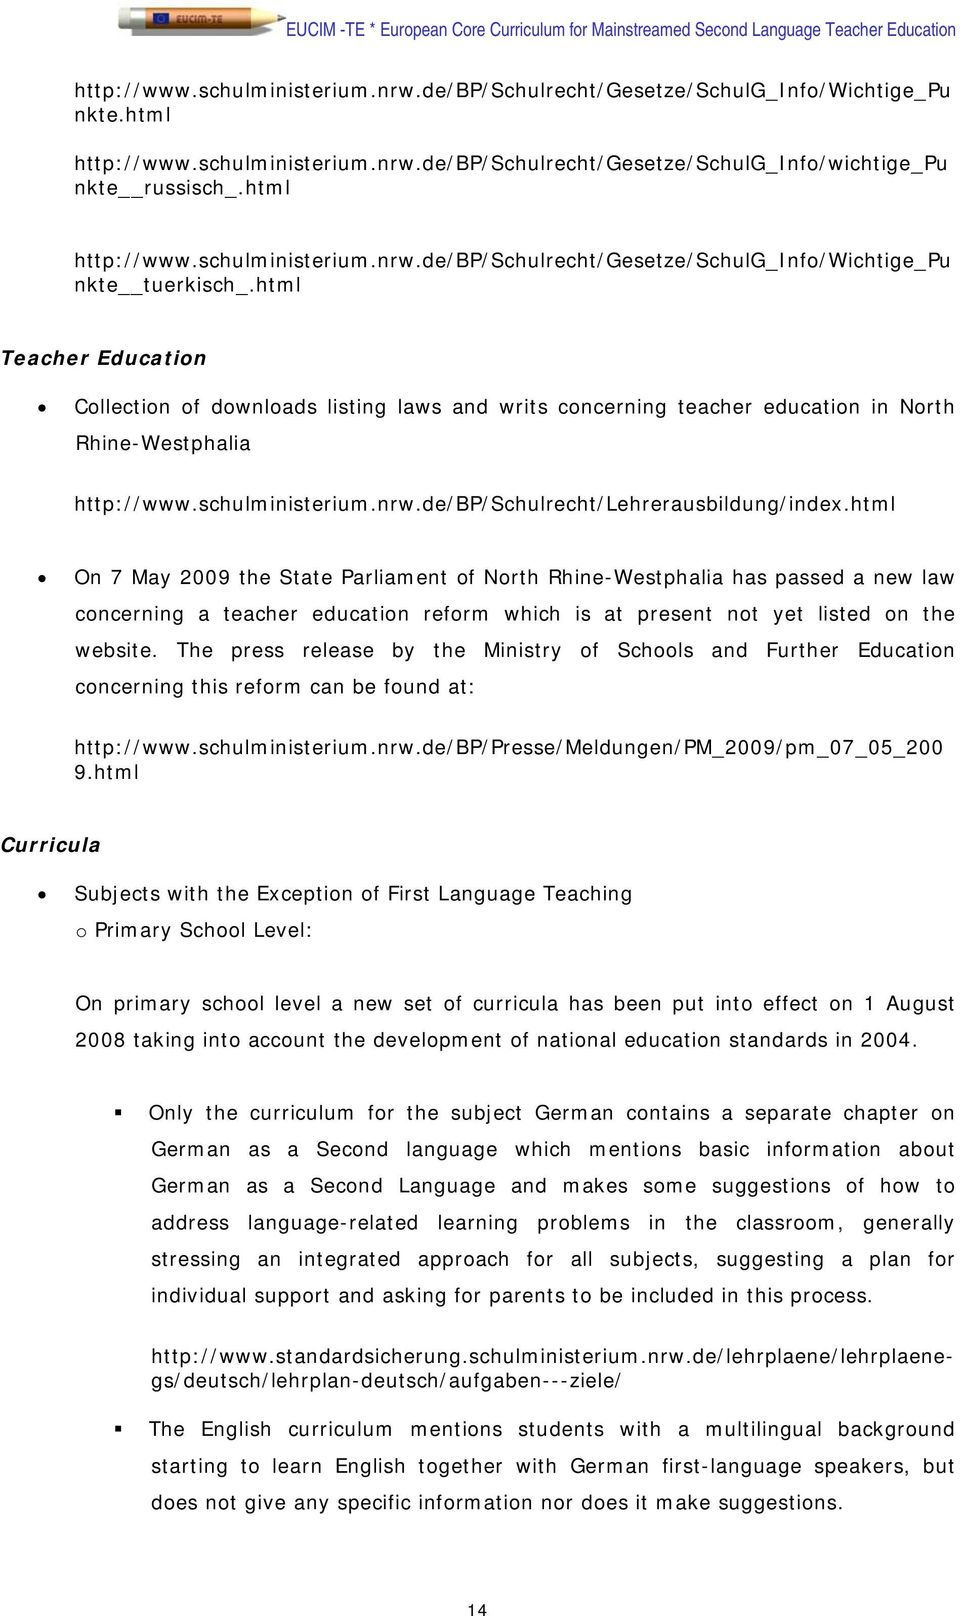 html Teacher Education Collection of downloads listing laws and writs concerning teacher education in North Rhine-Westphalia http://www.schulministerium.nrw.de/bp/schulrecht/lehrerausbildung/index.